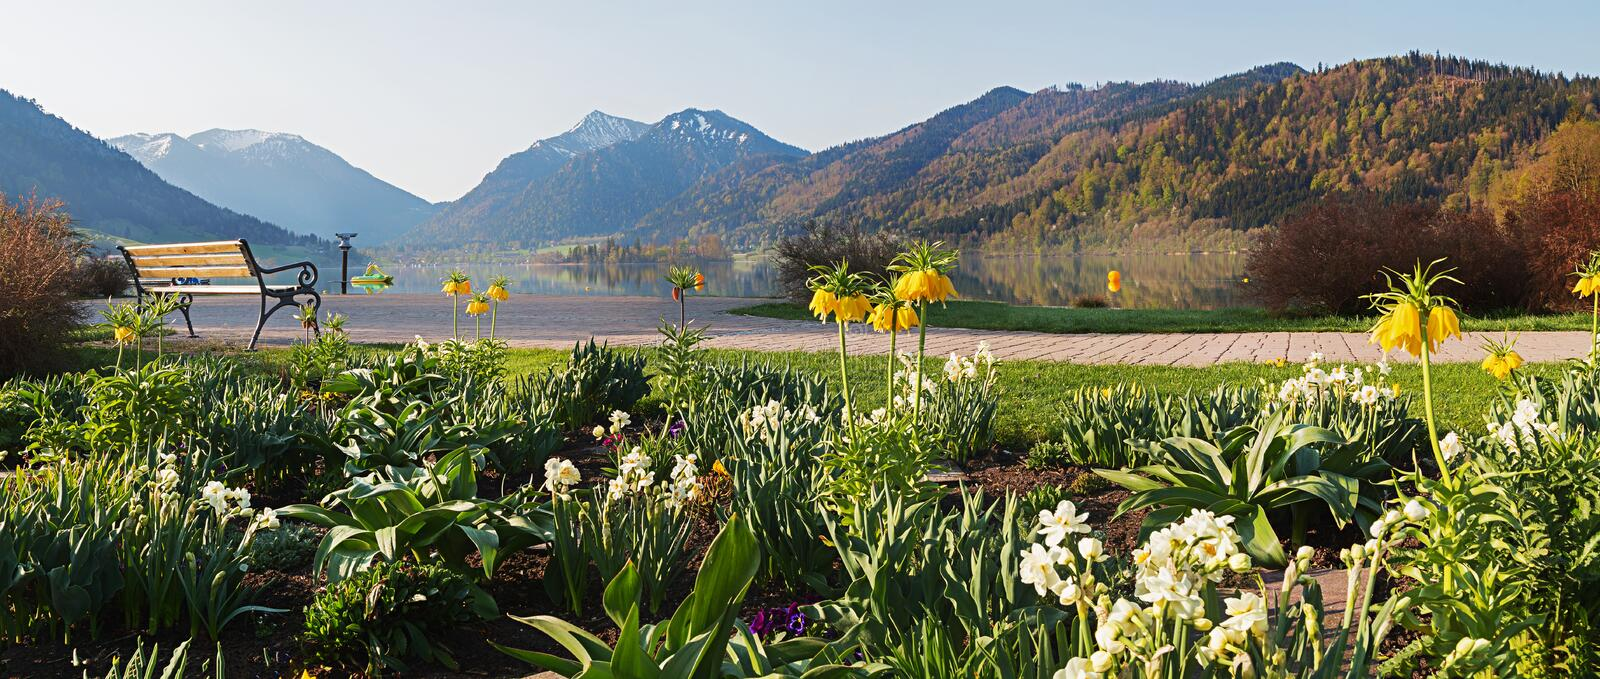 Beau schliersee springlike de jardin de station thermale avec le banc et le Mountain View photo stock